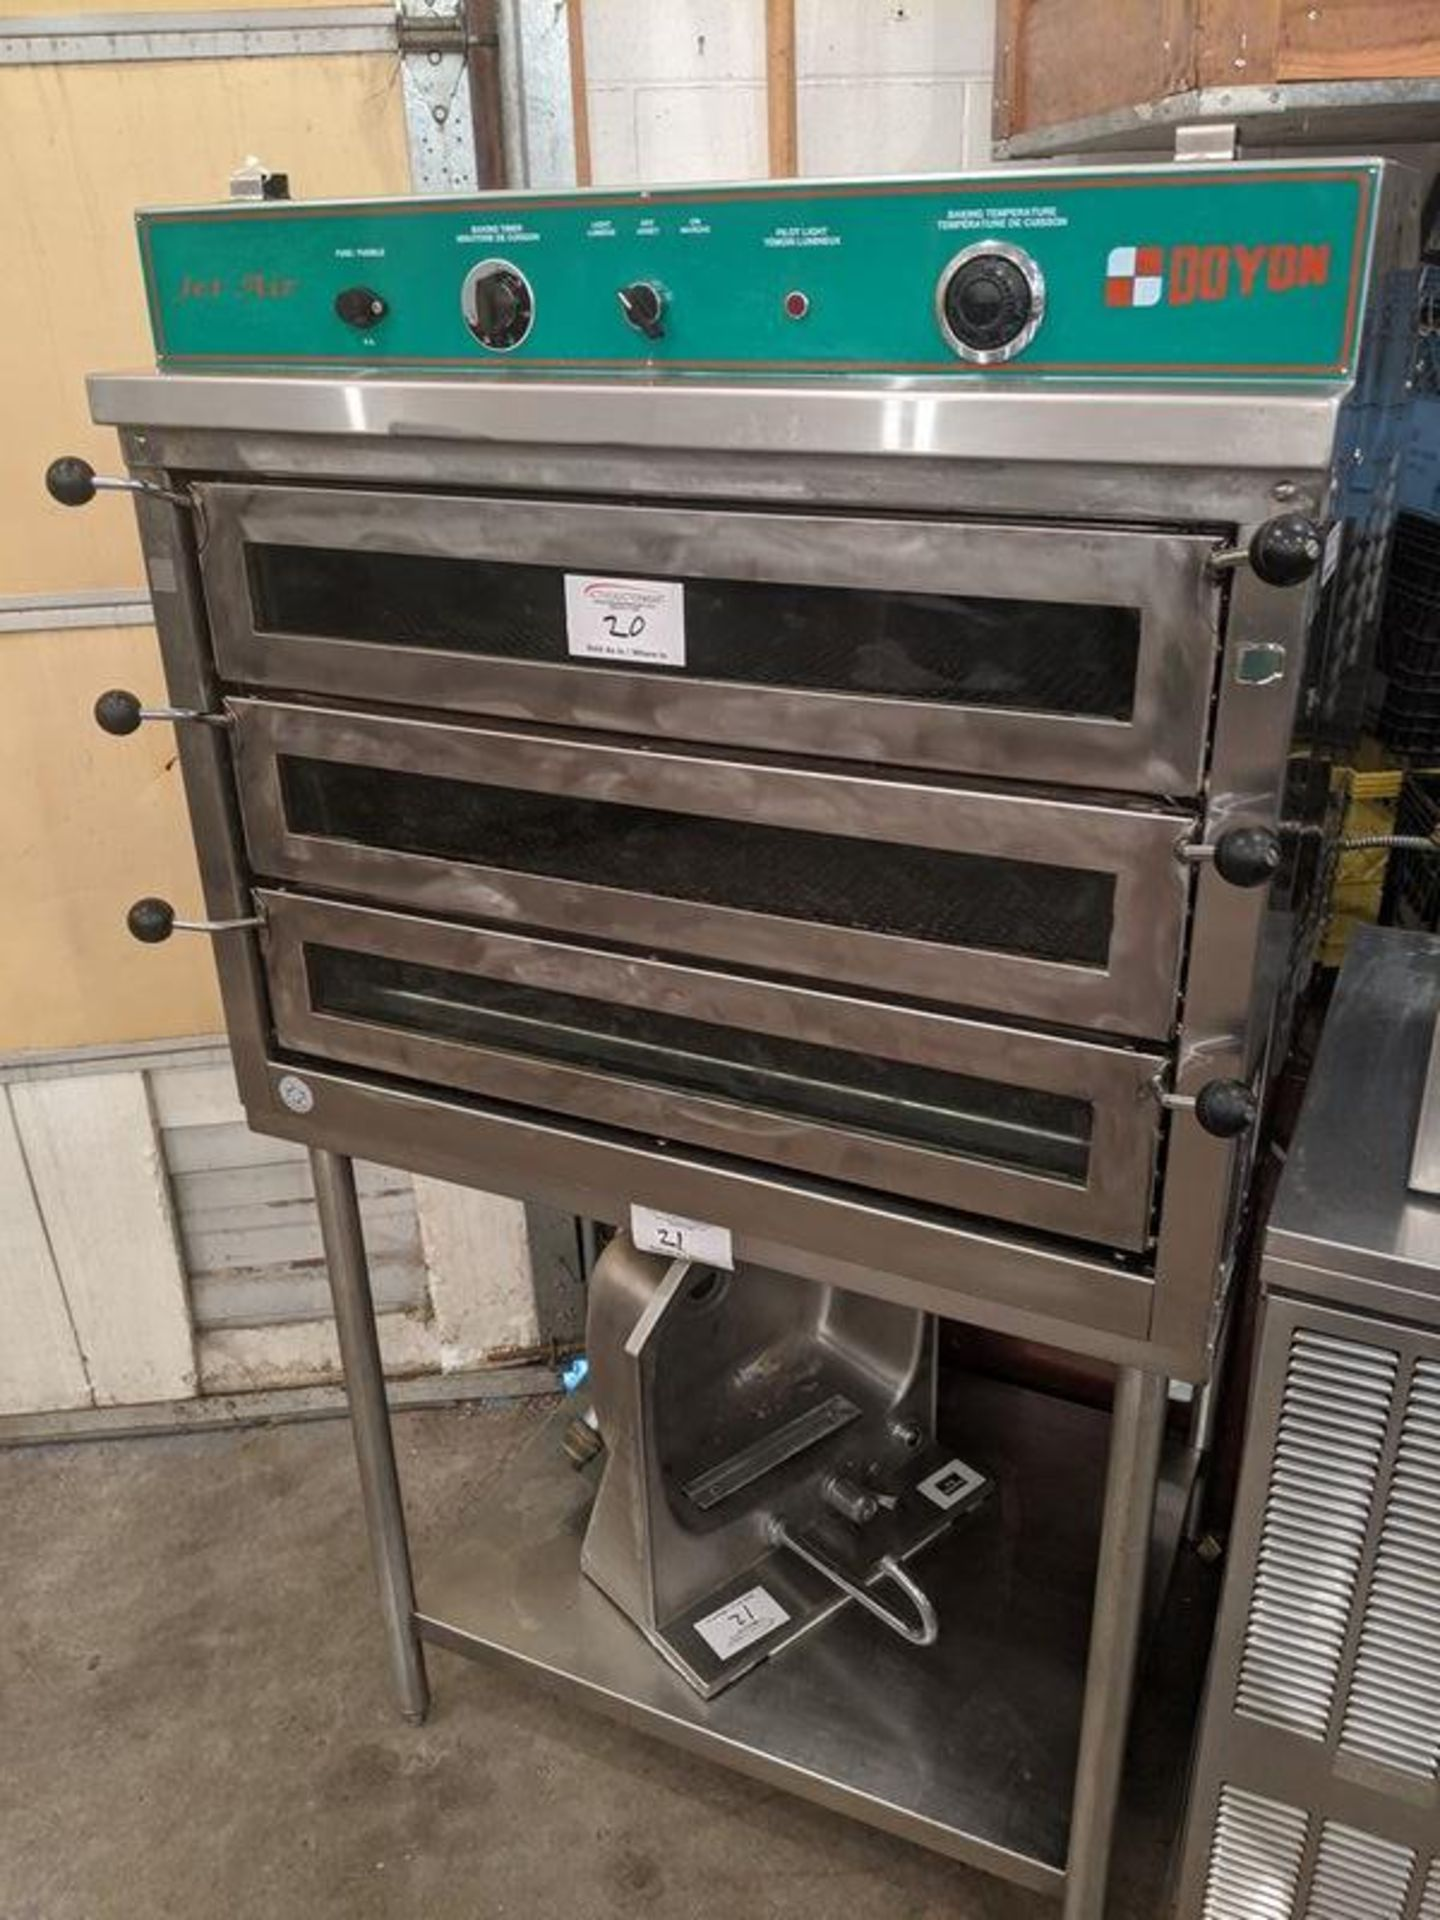 Lot 20 - Doyon Piz 3 Jet Air Oven - Note Stand Not Included